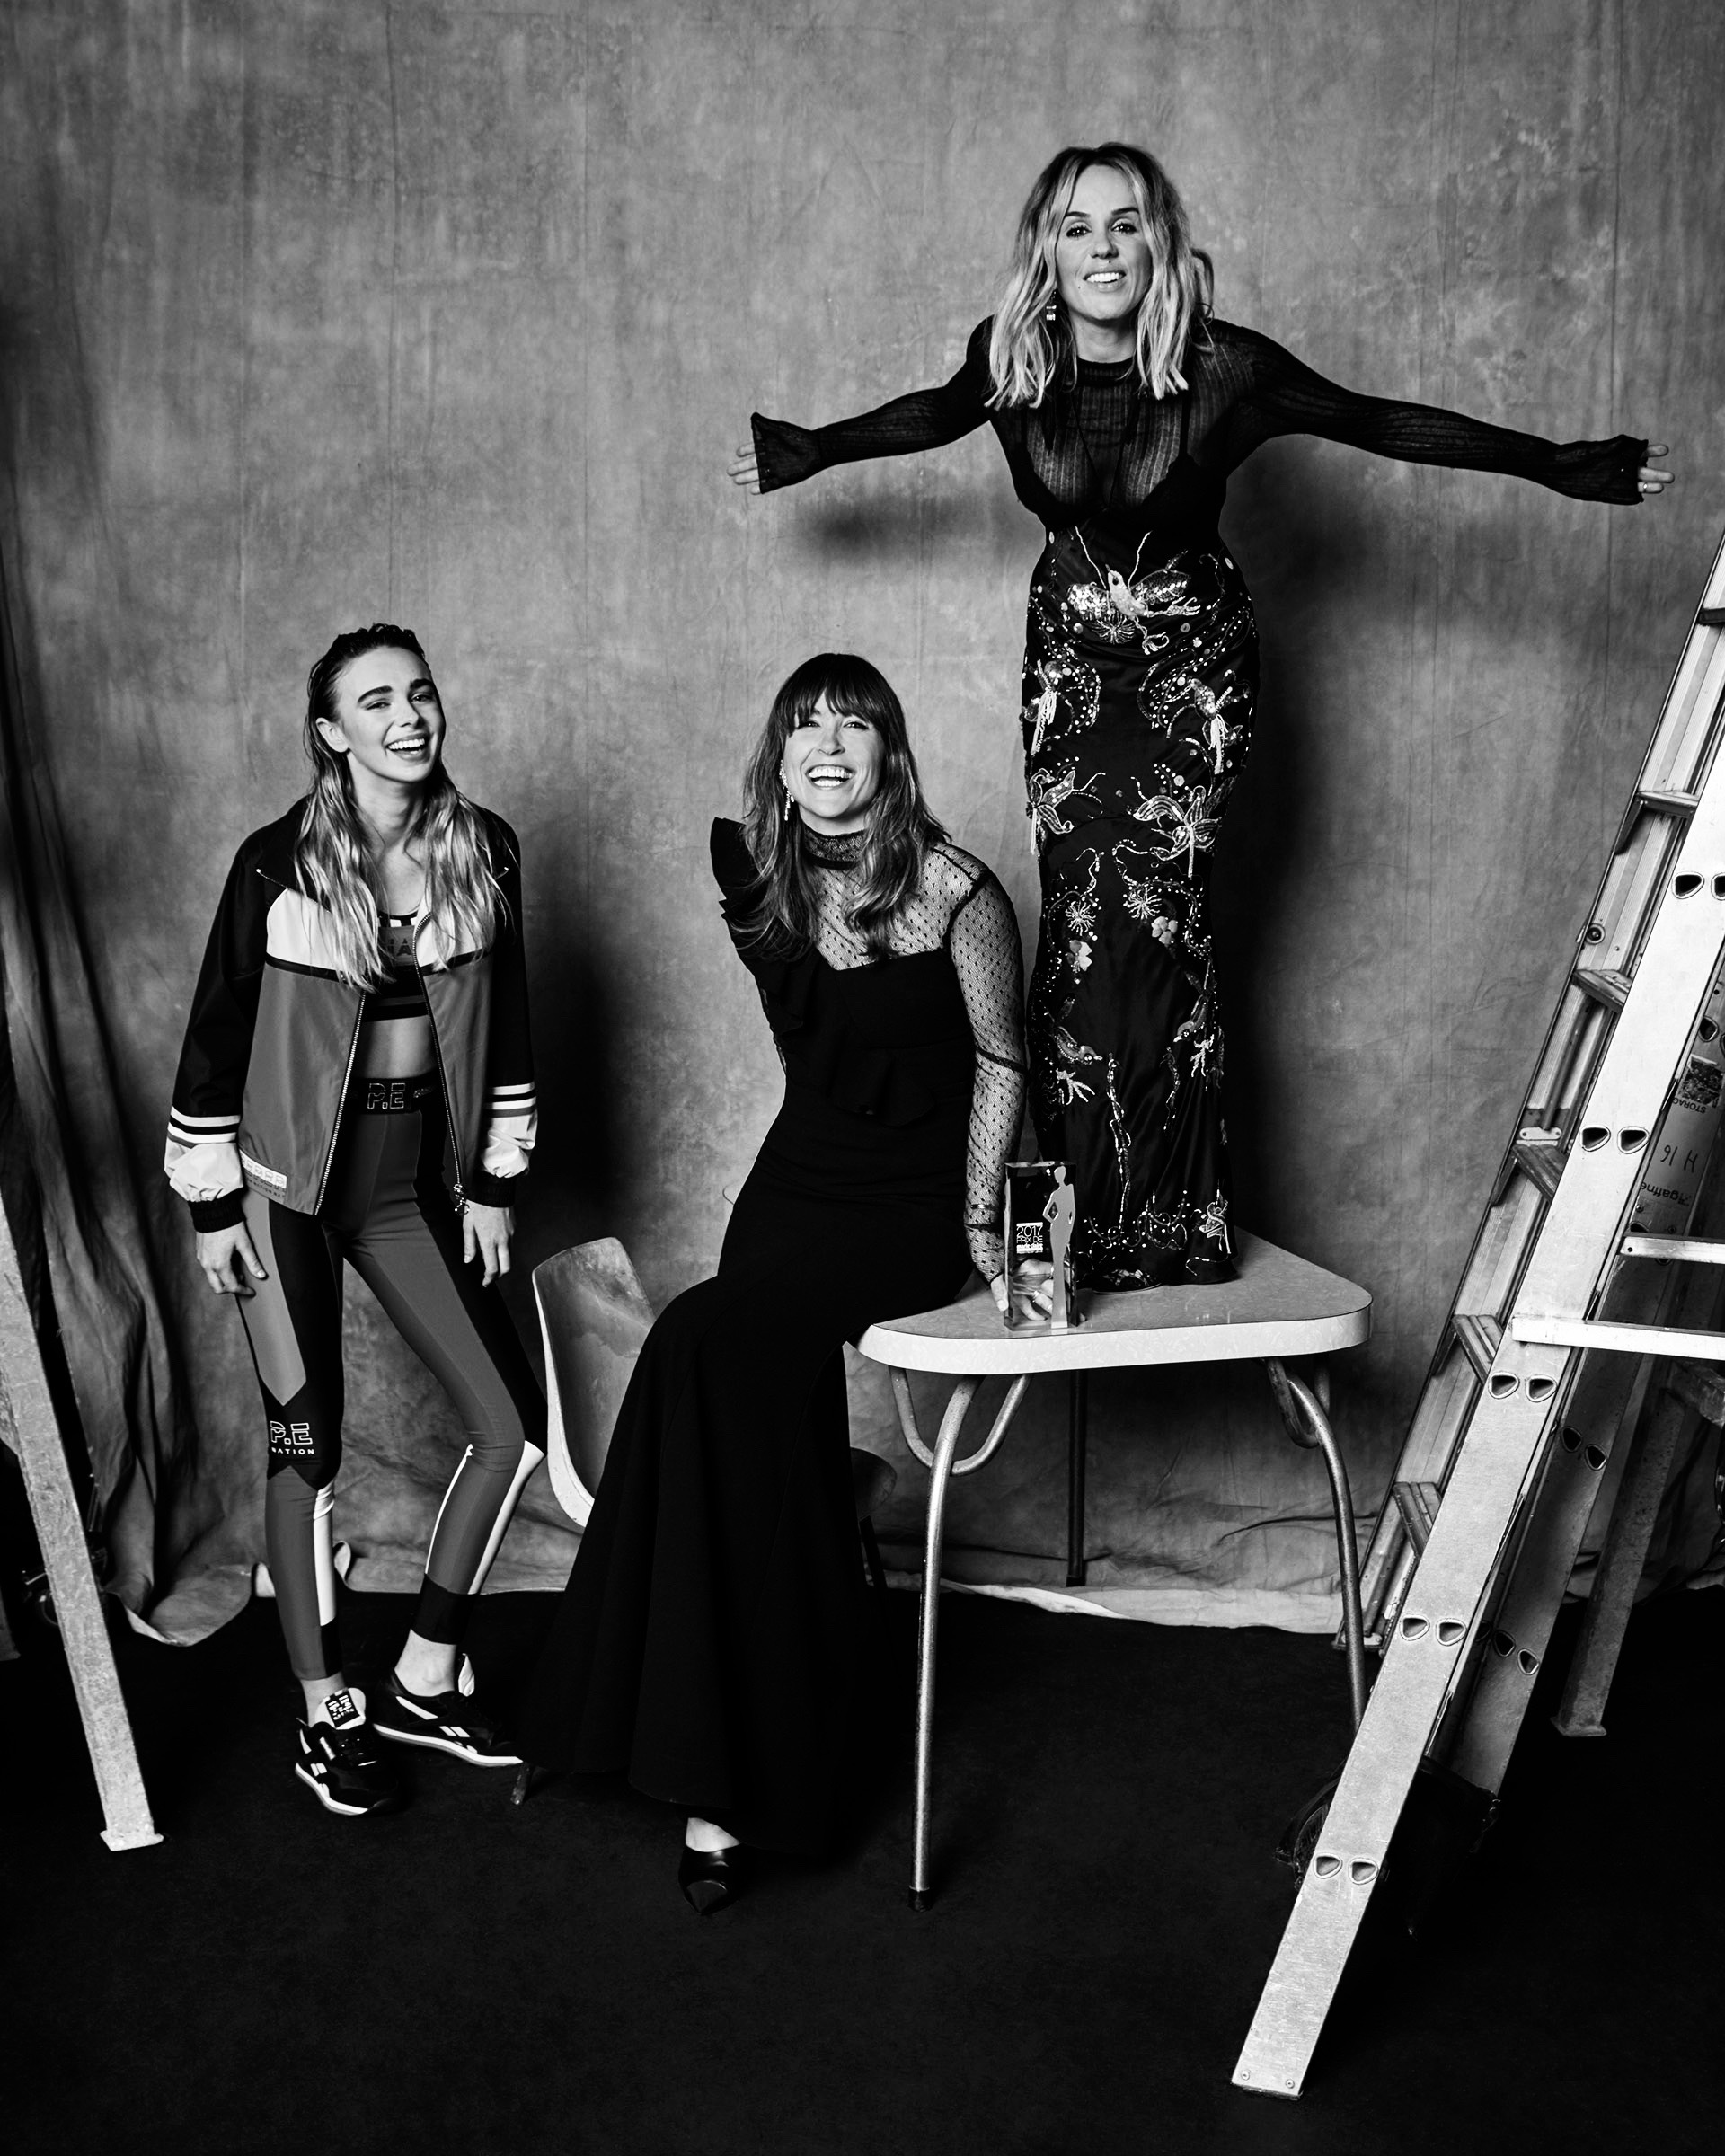 FULL_170815_PrixdeMarieClaire_04_0628.jpeg